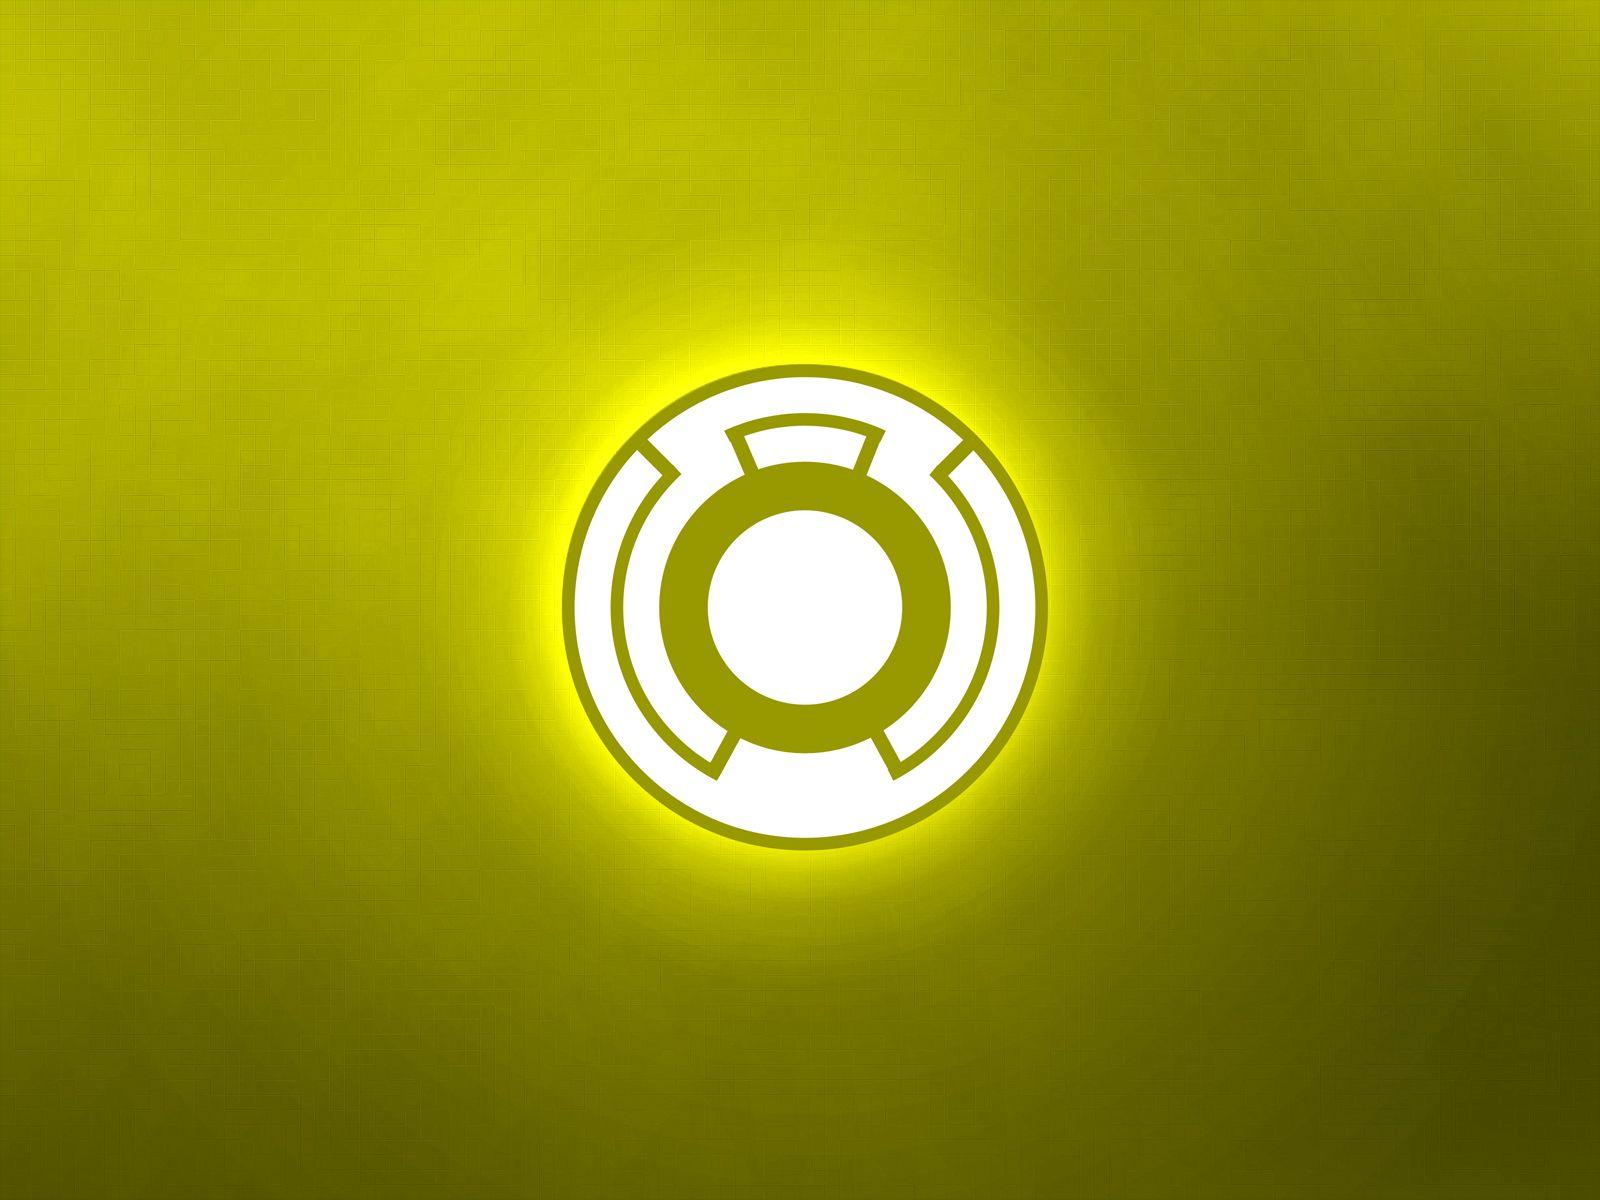 yellow lantern logo - HD 1600×1200